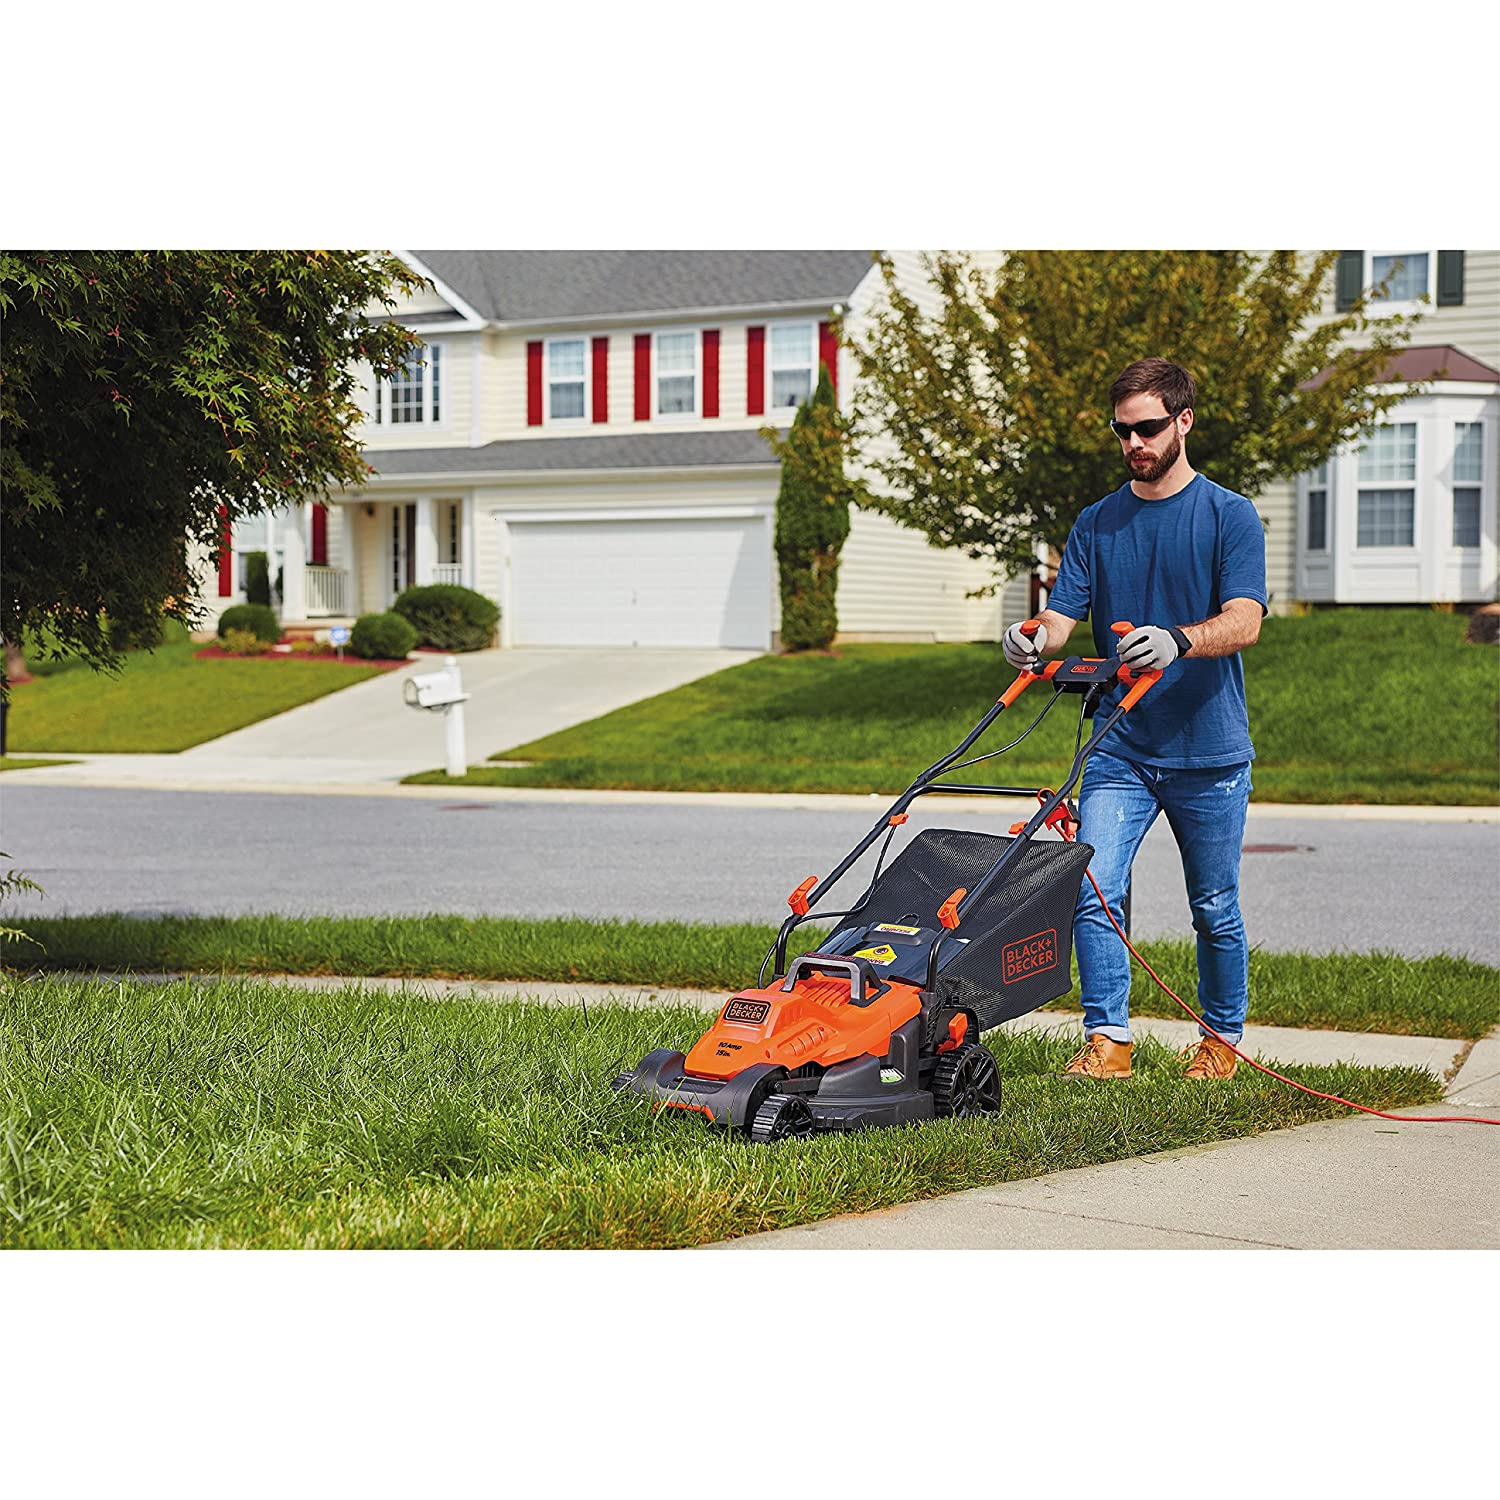 Amazon.com: Black & Decker - Cortador 3 en 1 de 12.0 in ...